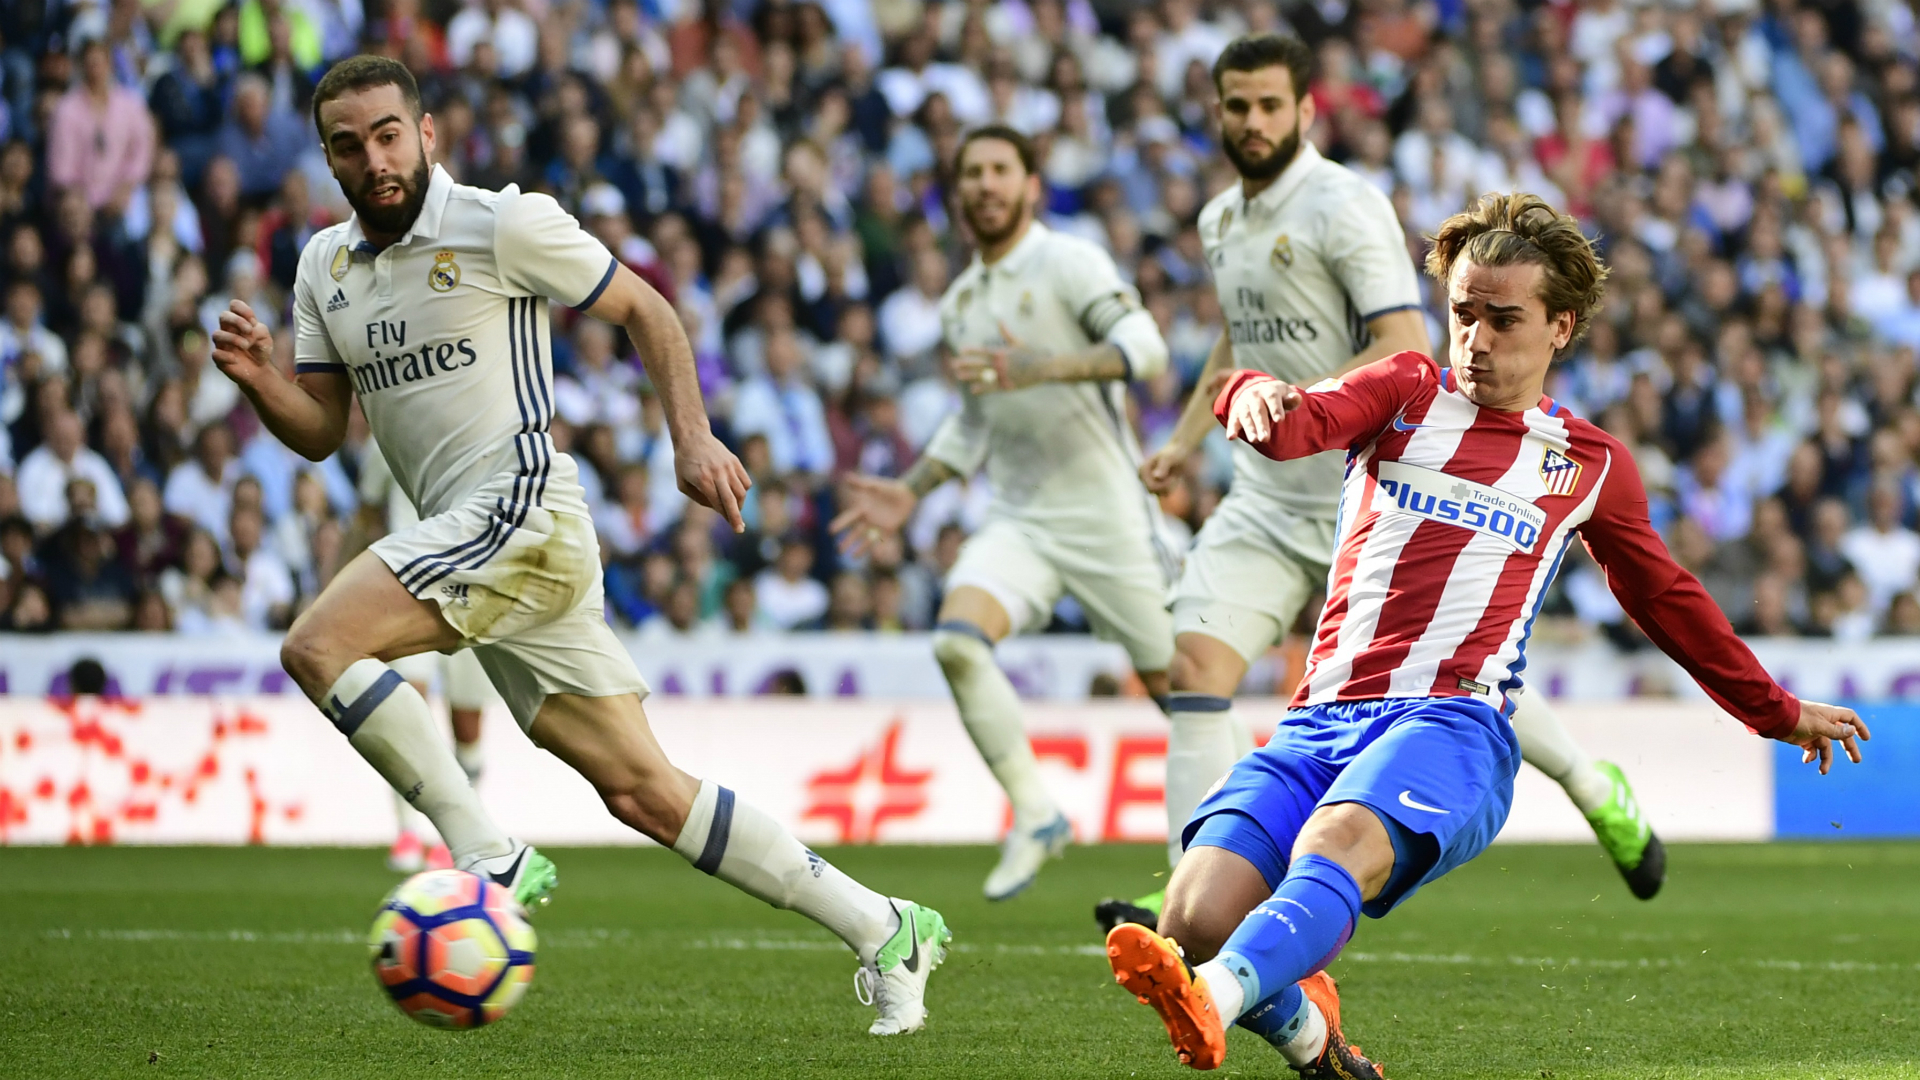 Atletico will never get a better chance to end Madrid hoodoo and win Champions League